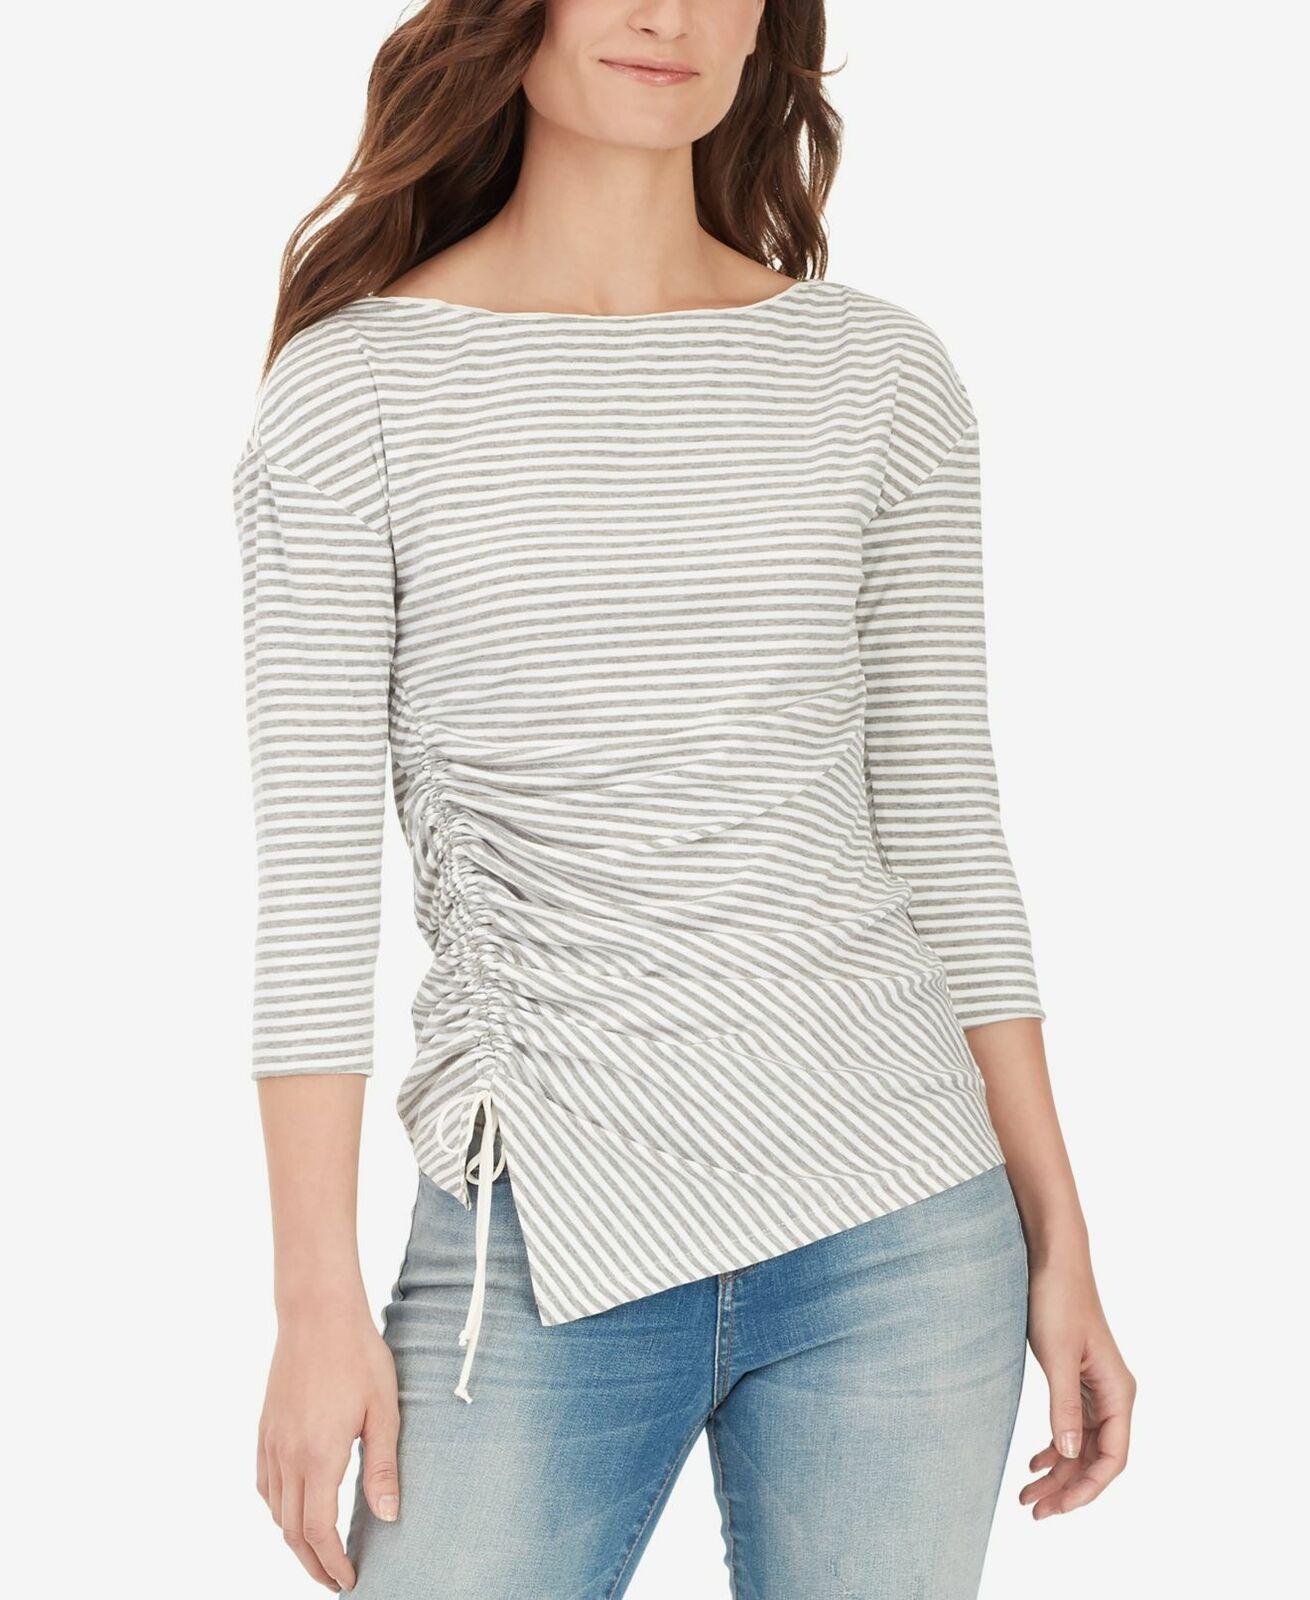 William-Rast-Women-039-s-Gray-Size-XS-Striped-Ribbed-Knit-Cinched-Blouse